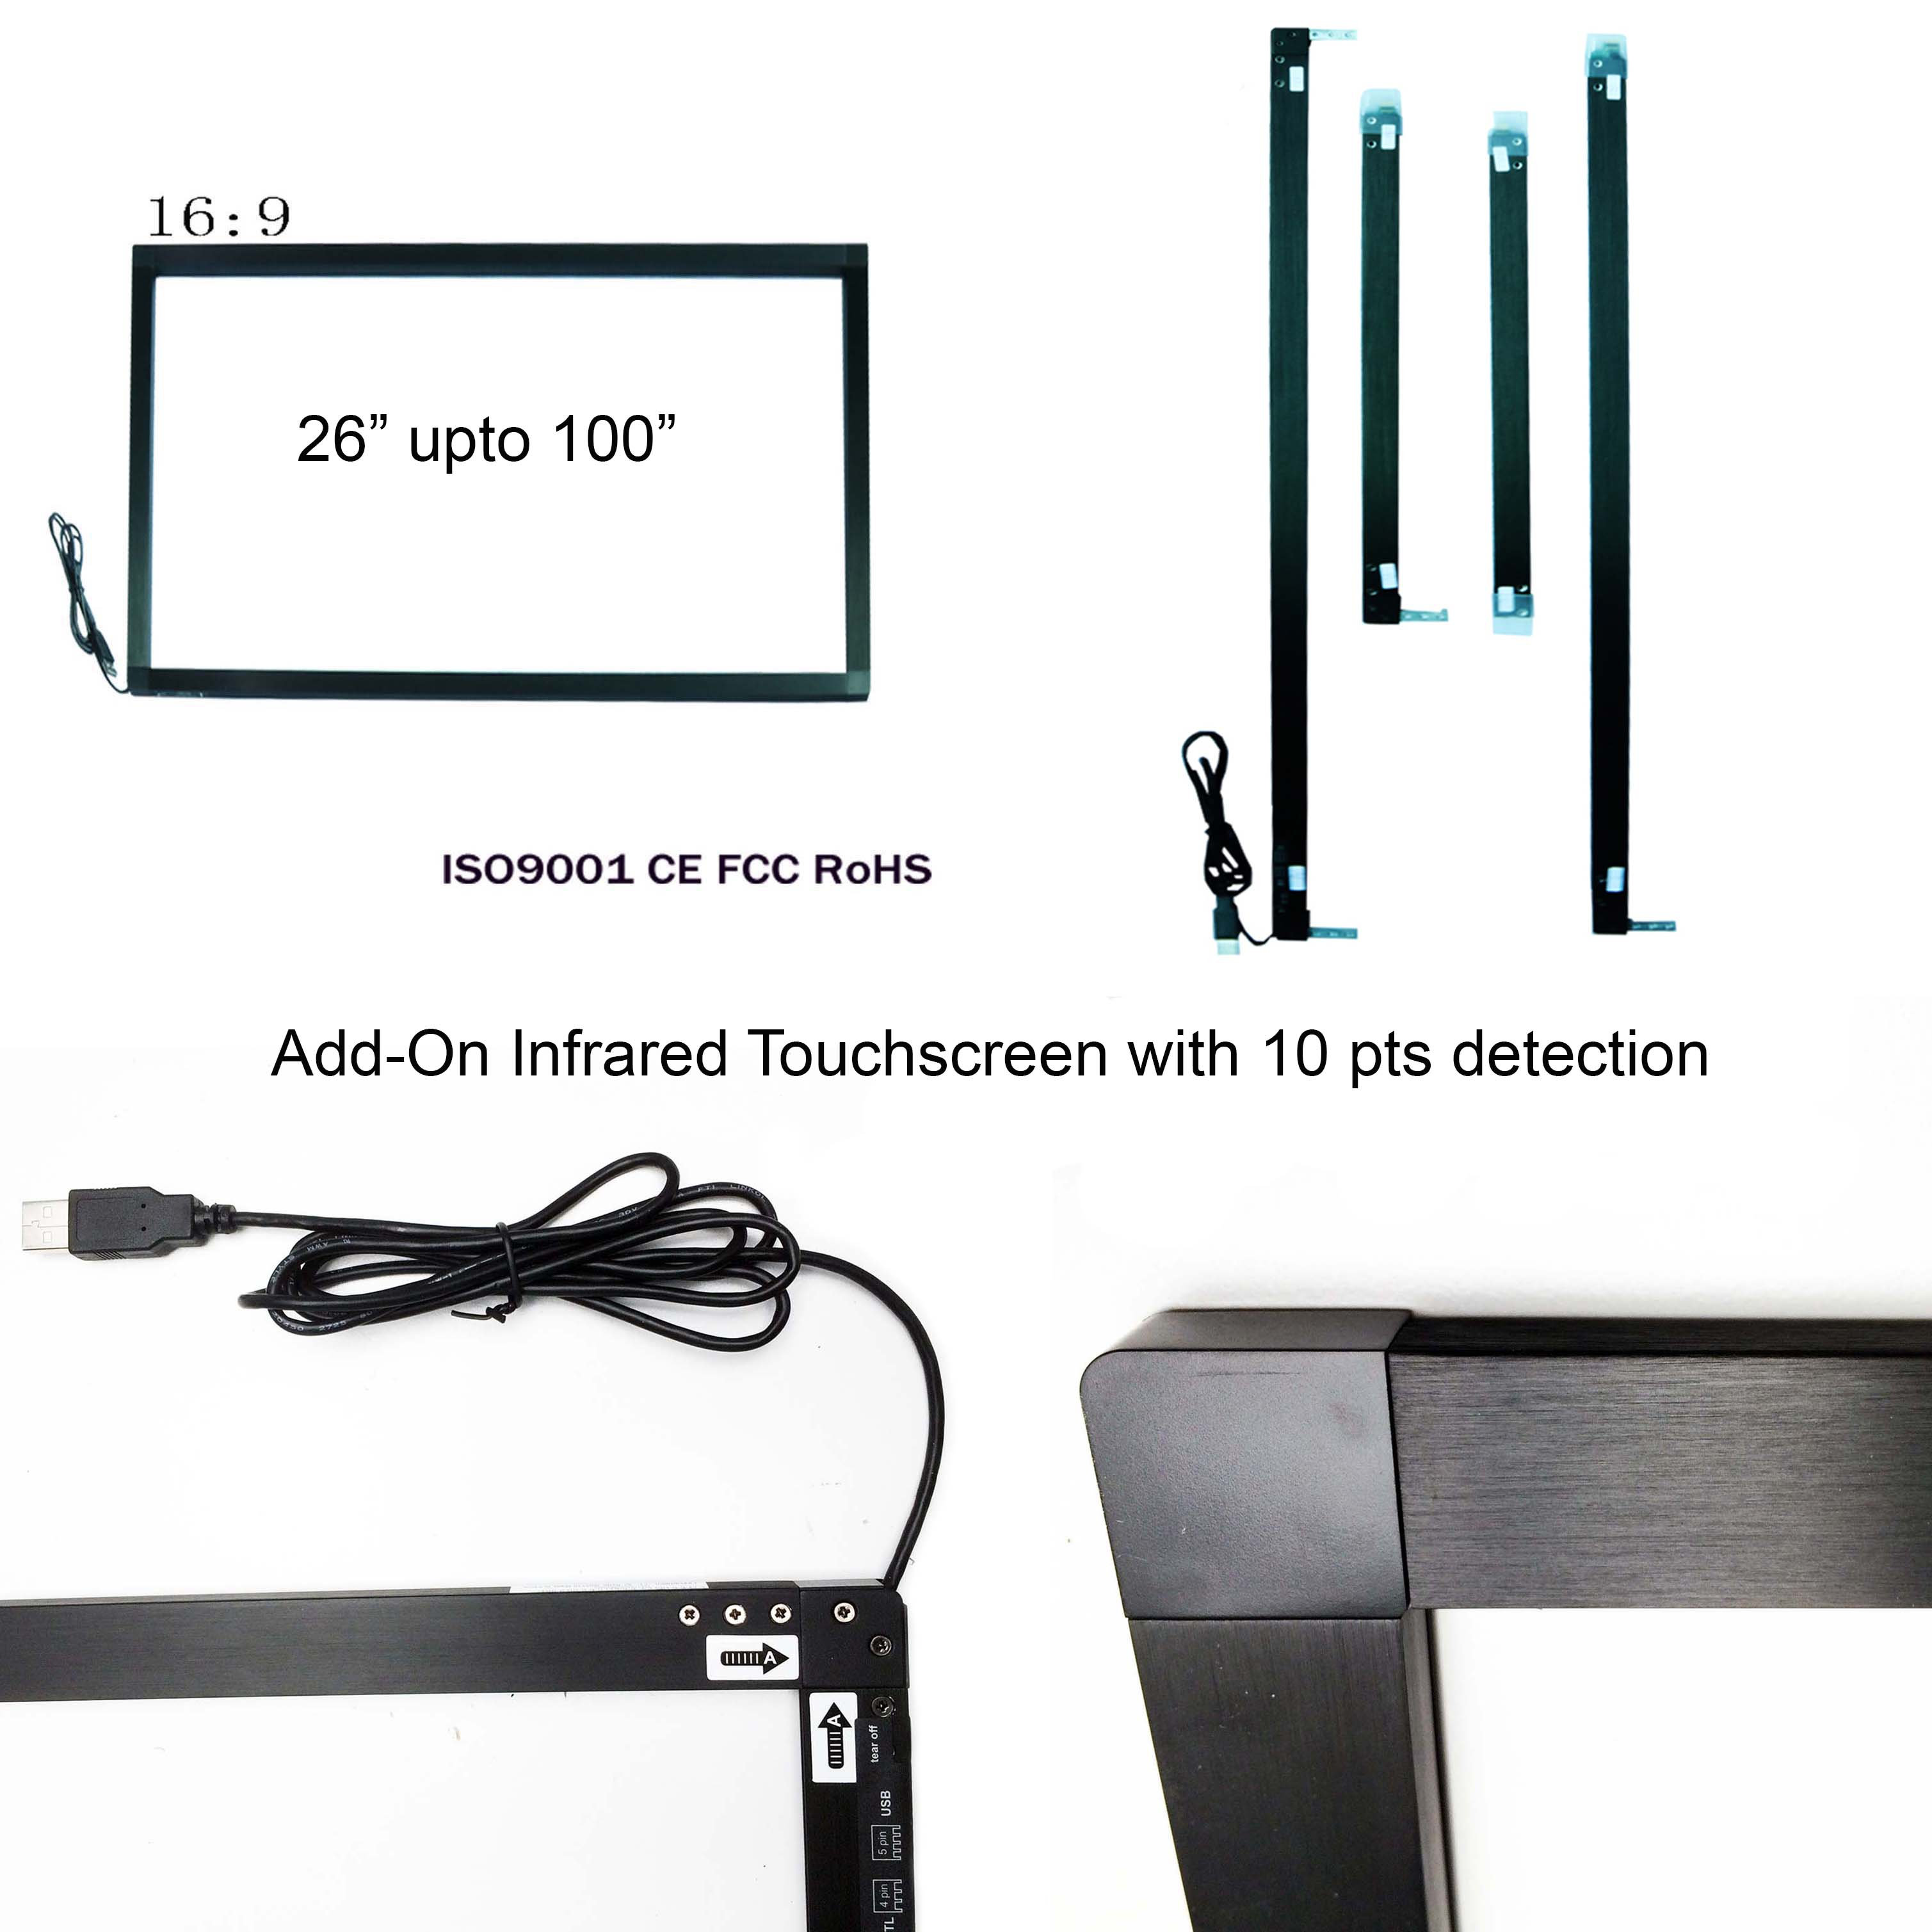 Add-On infrared touchscreens